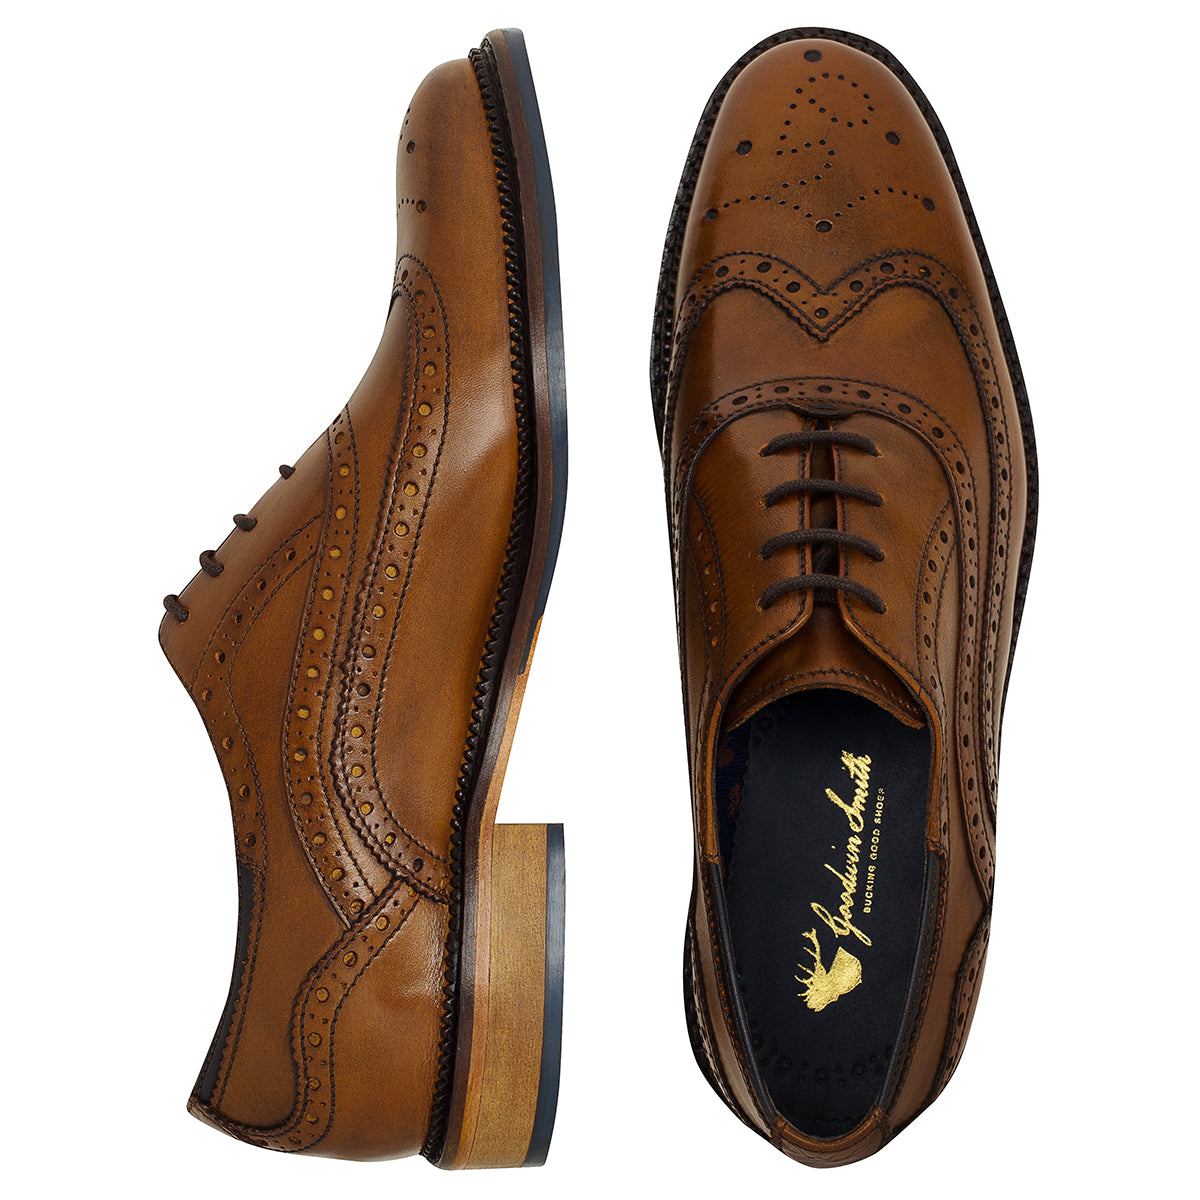 leather upper Chatworth Tan Brogue Shoe by Goodwin Smith